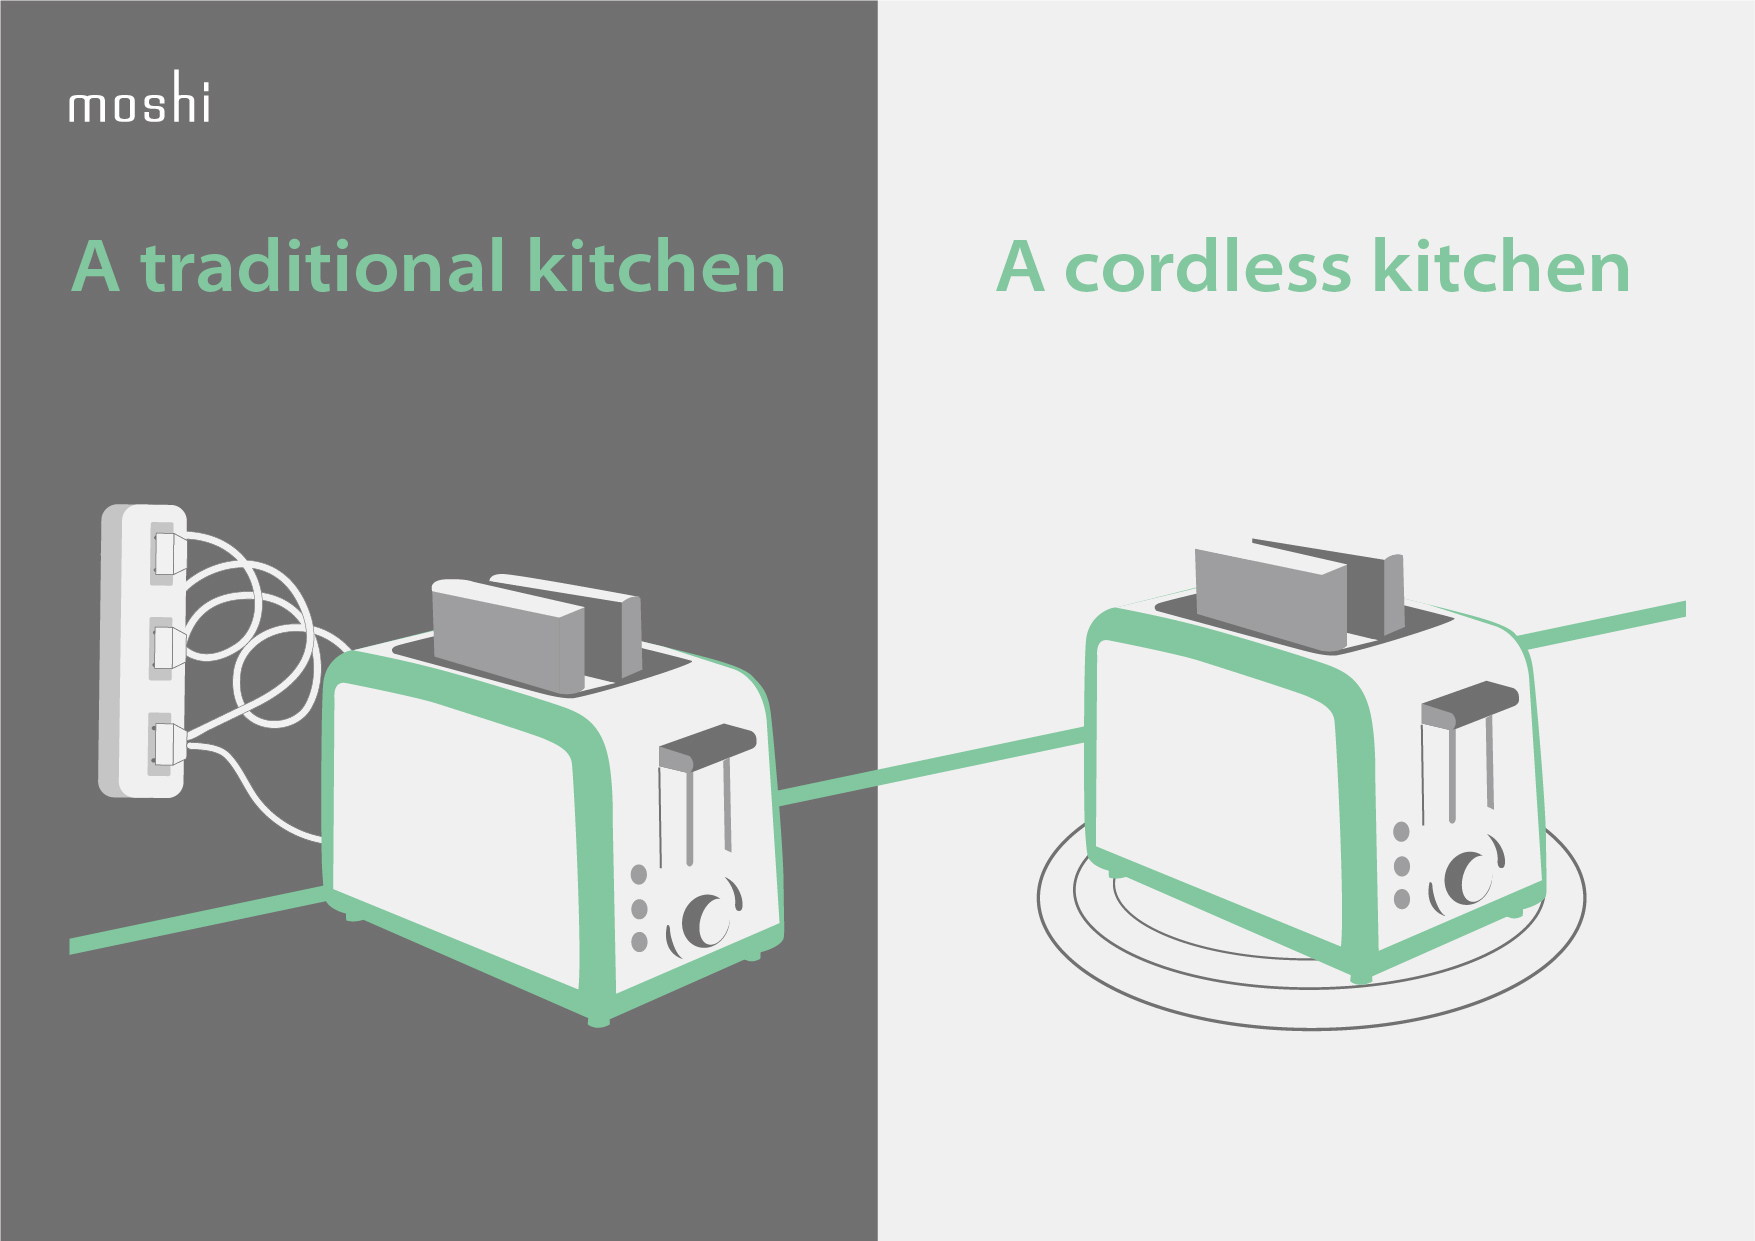 A side by side comparison of a toaster powered by a cable versus a toaster powered by wireless charging